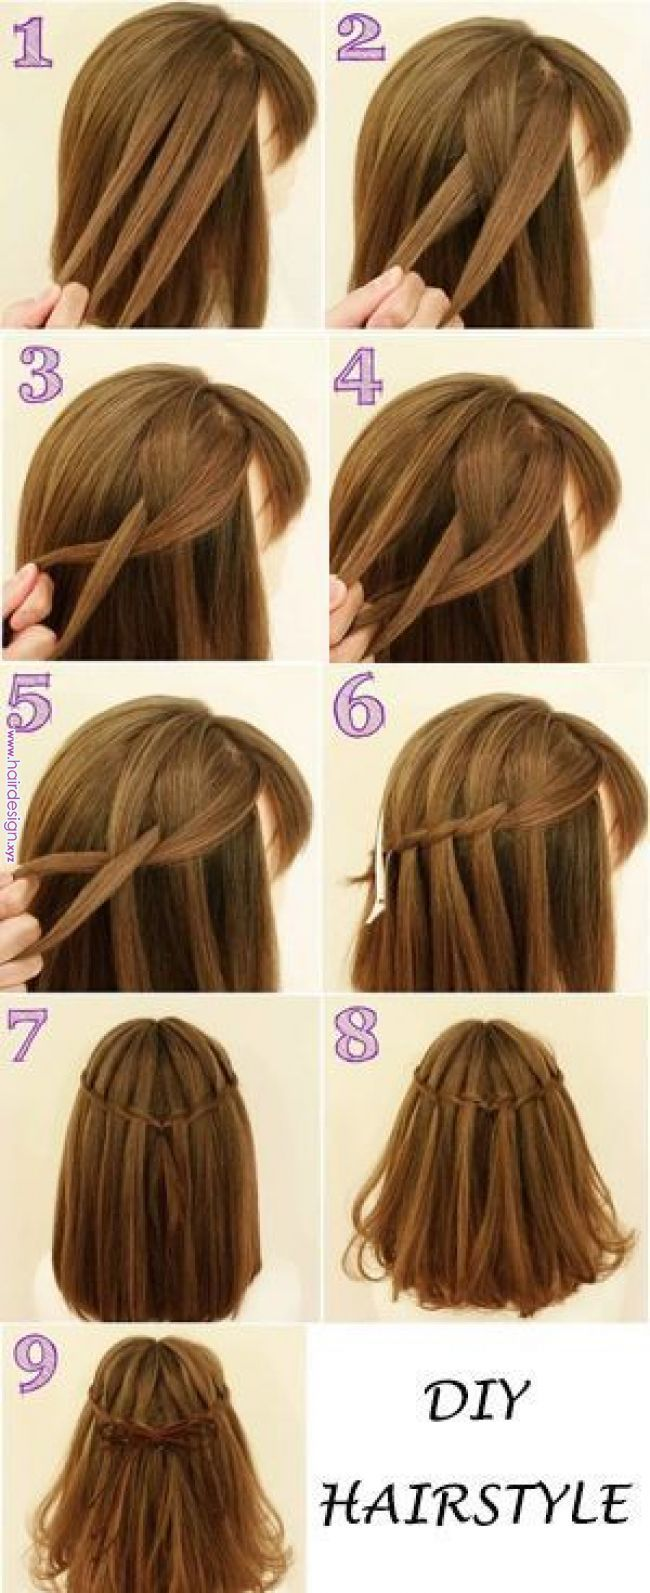 DIY haristyle. You can try  Easy daily hairstyle in 10